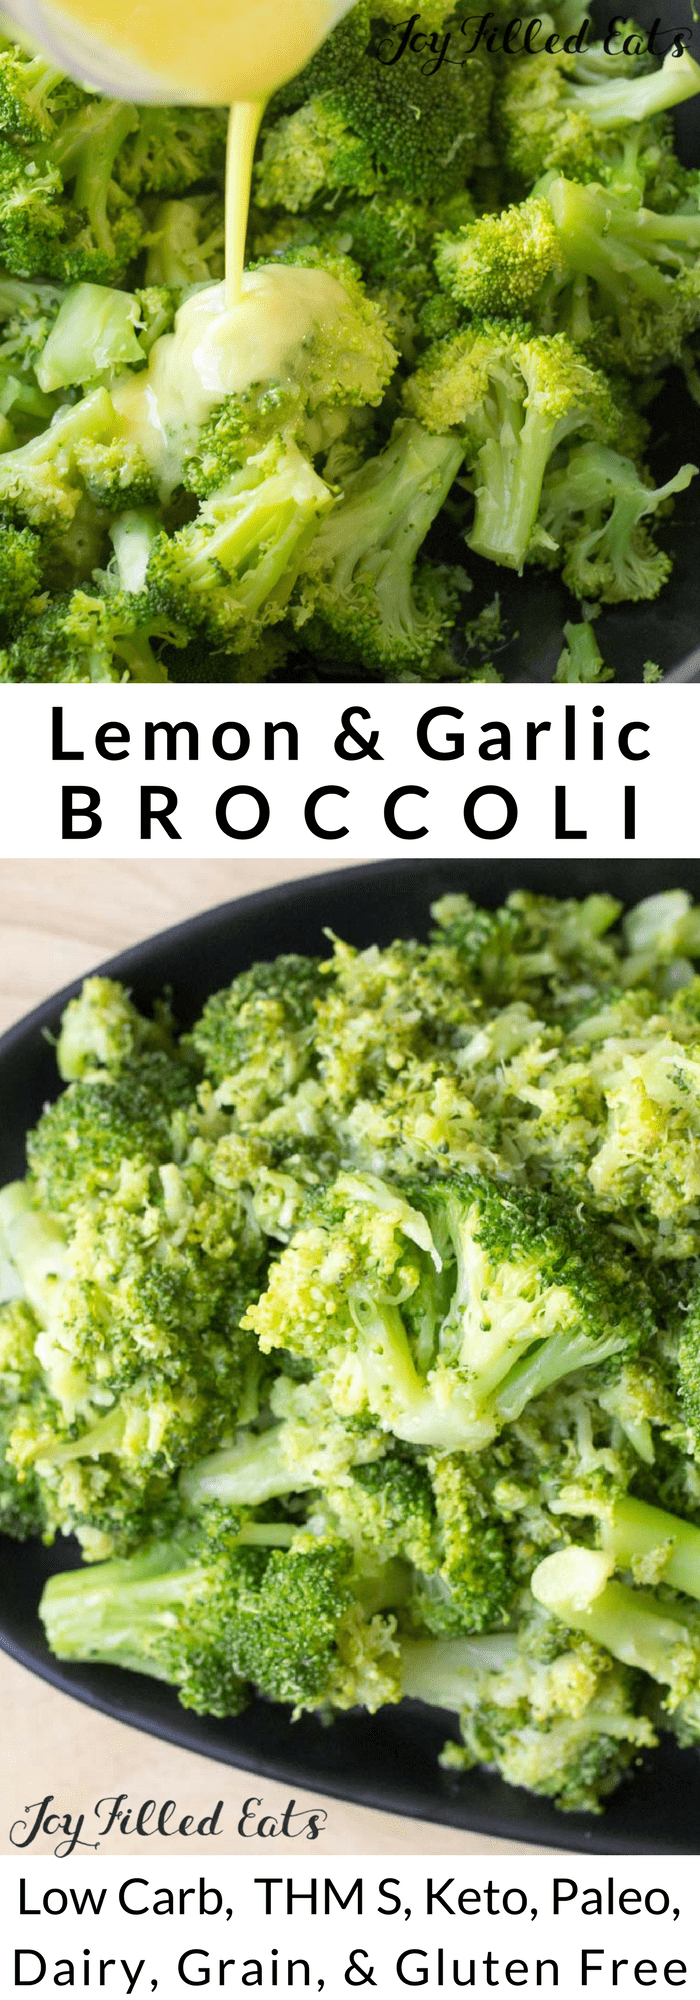 Lemon & Garlic Broccoli - Low Carb Keto Grain-Free Gluten-Free THM S This Garlic Broccoli Side Dish Recipe may not look like much but it is the.best.broccoli you will ever eat. I could seriously eat pounds of this stuff. -   21 yummy broccoli recipes ideas